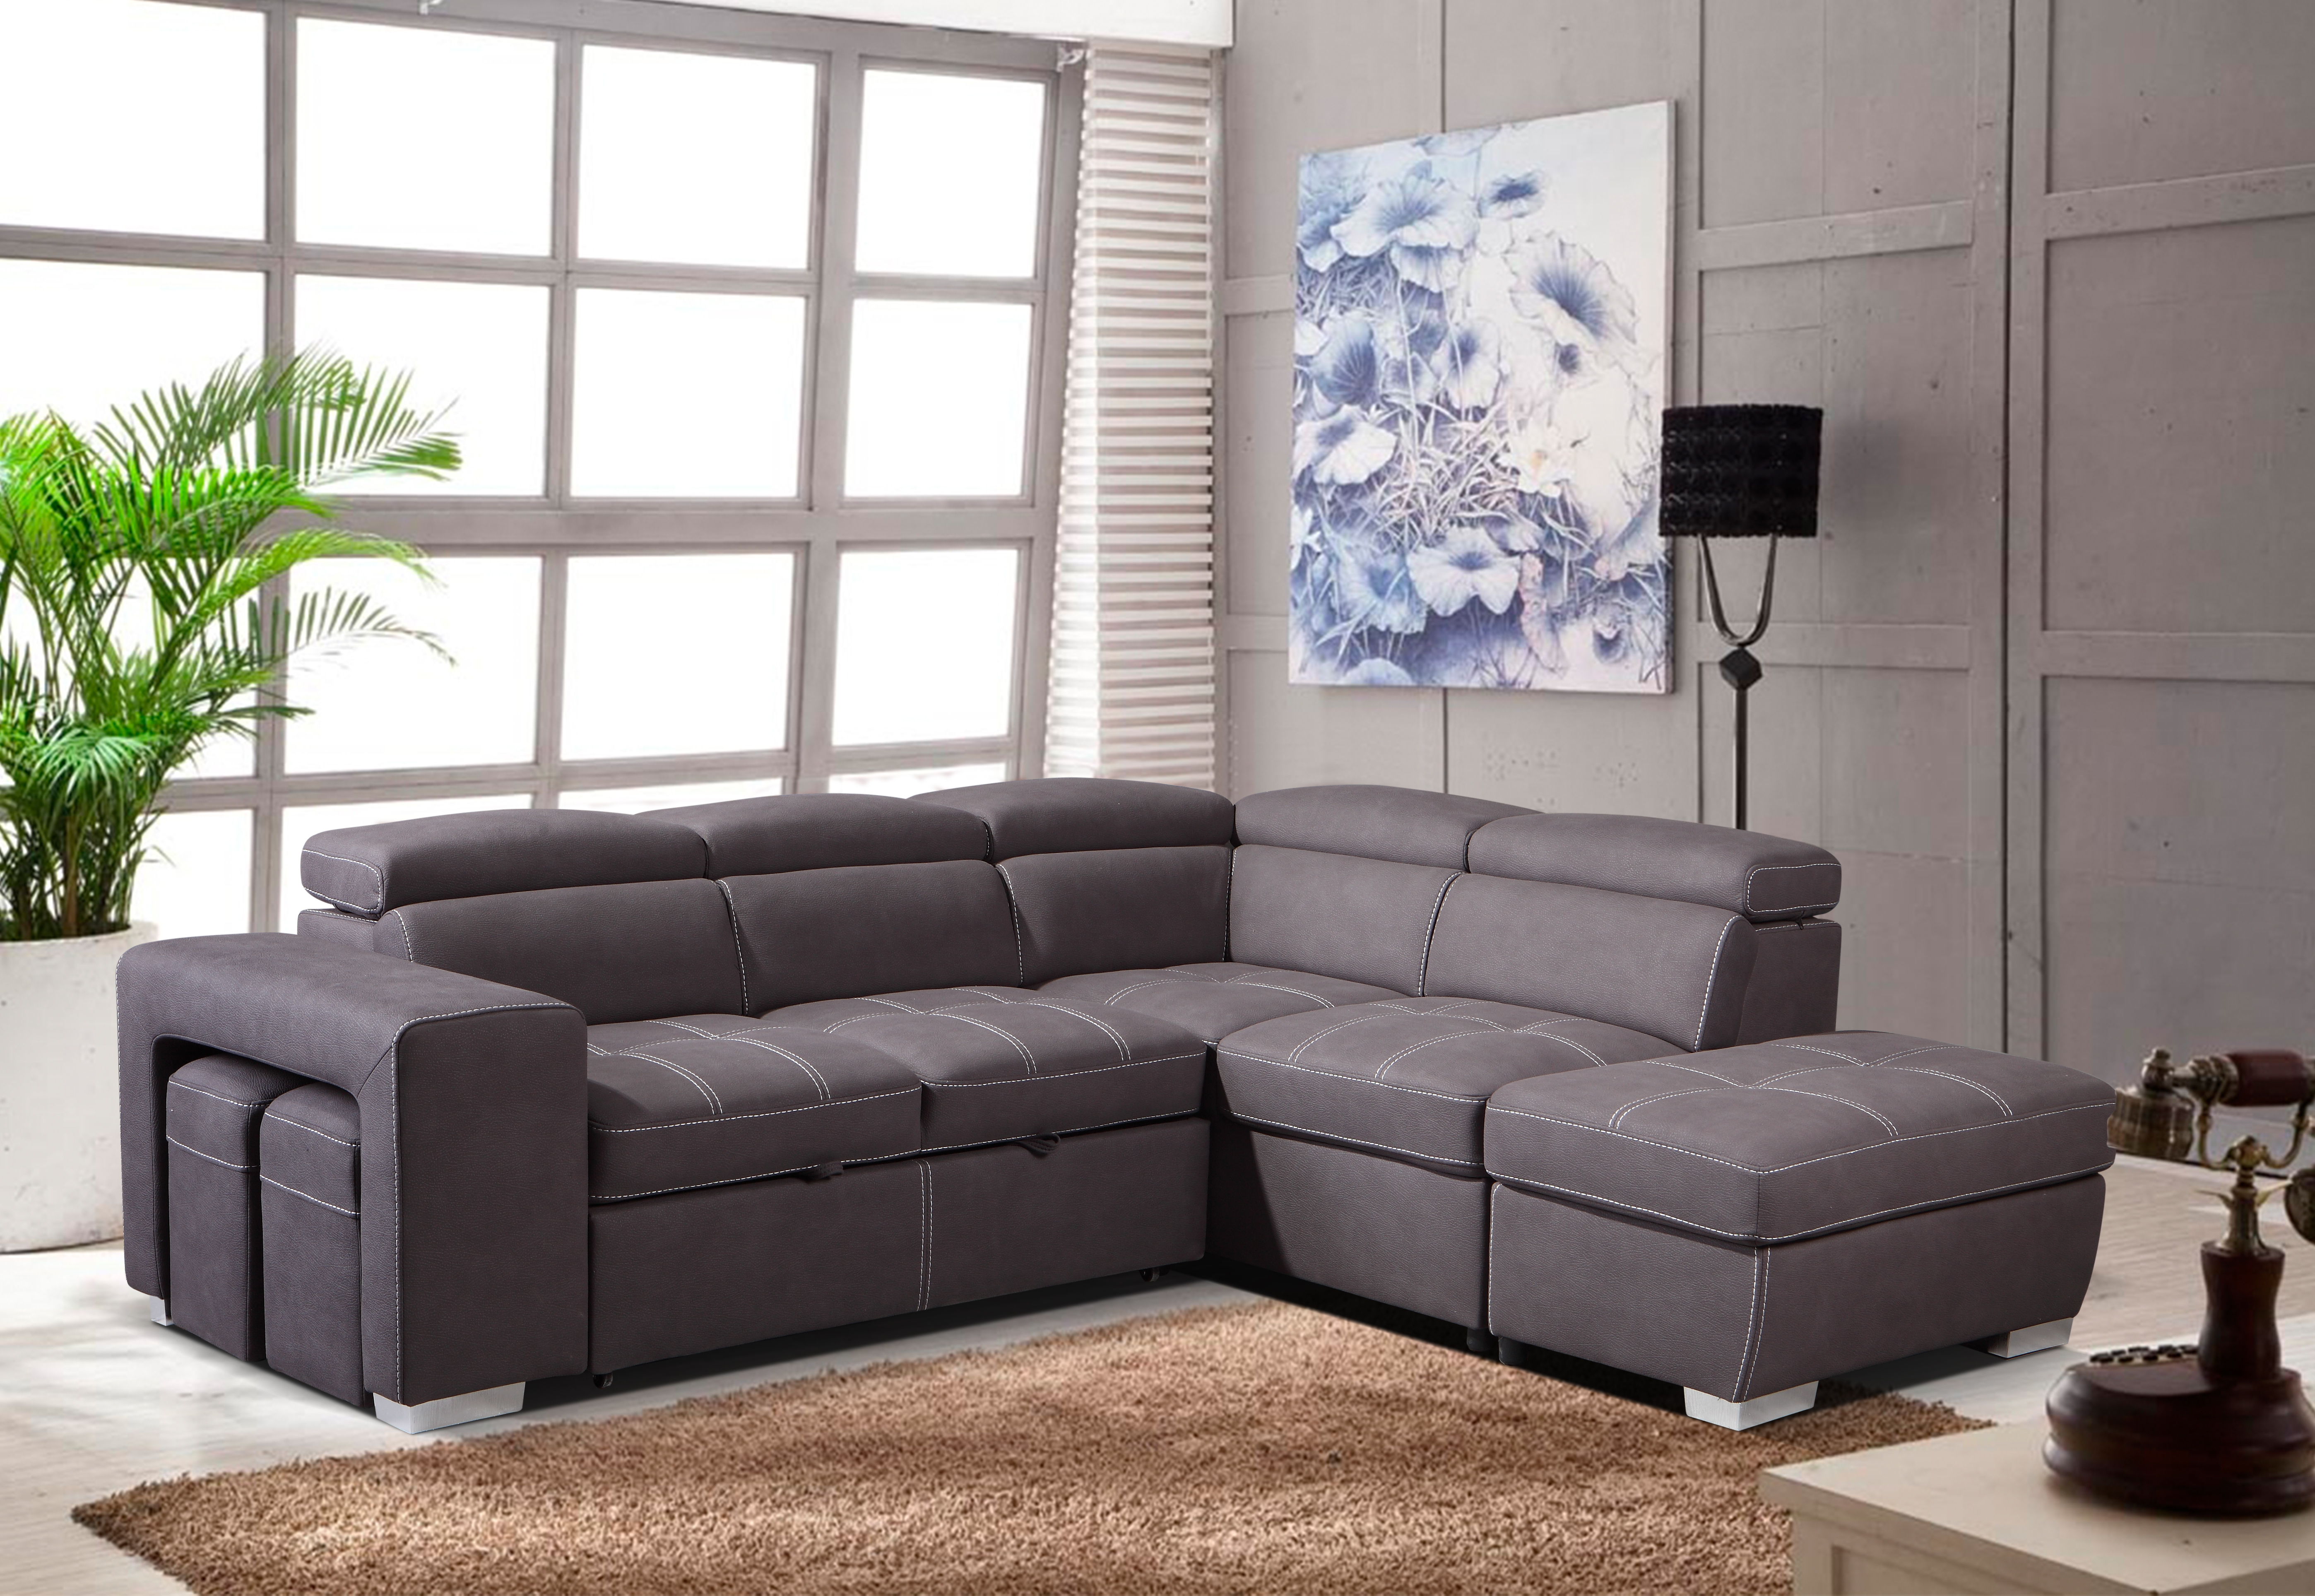 Divano letto angolare ispica dolce casa outlet for Casa outlet